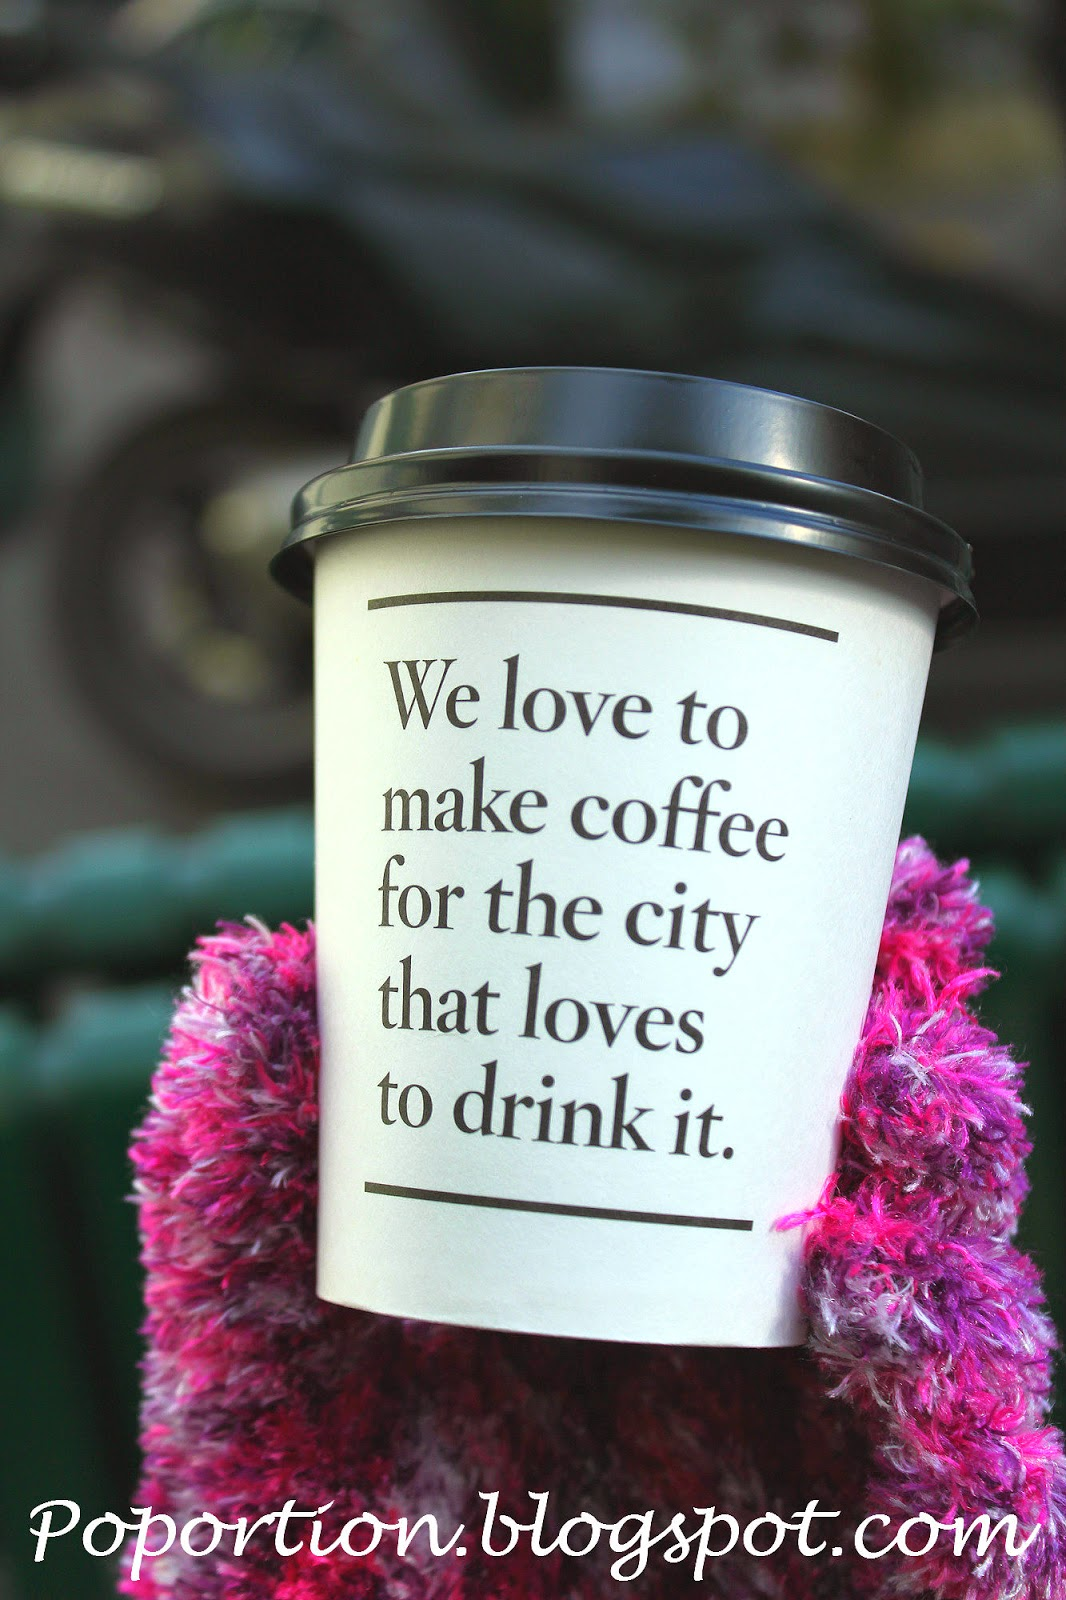 we love to make coffee for the city that loves to drink it